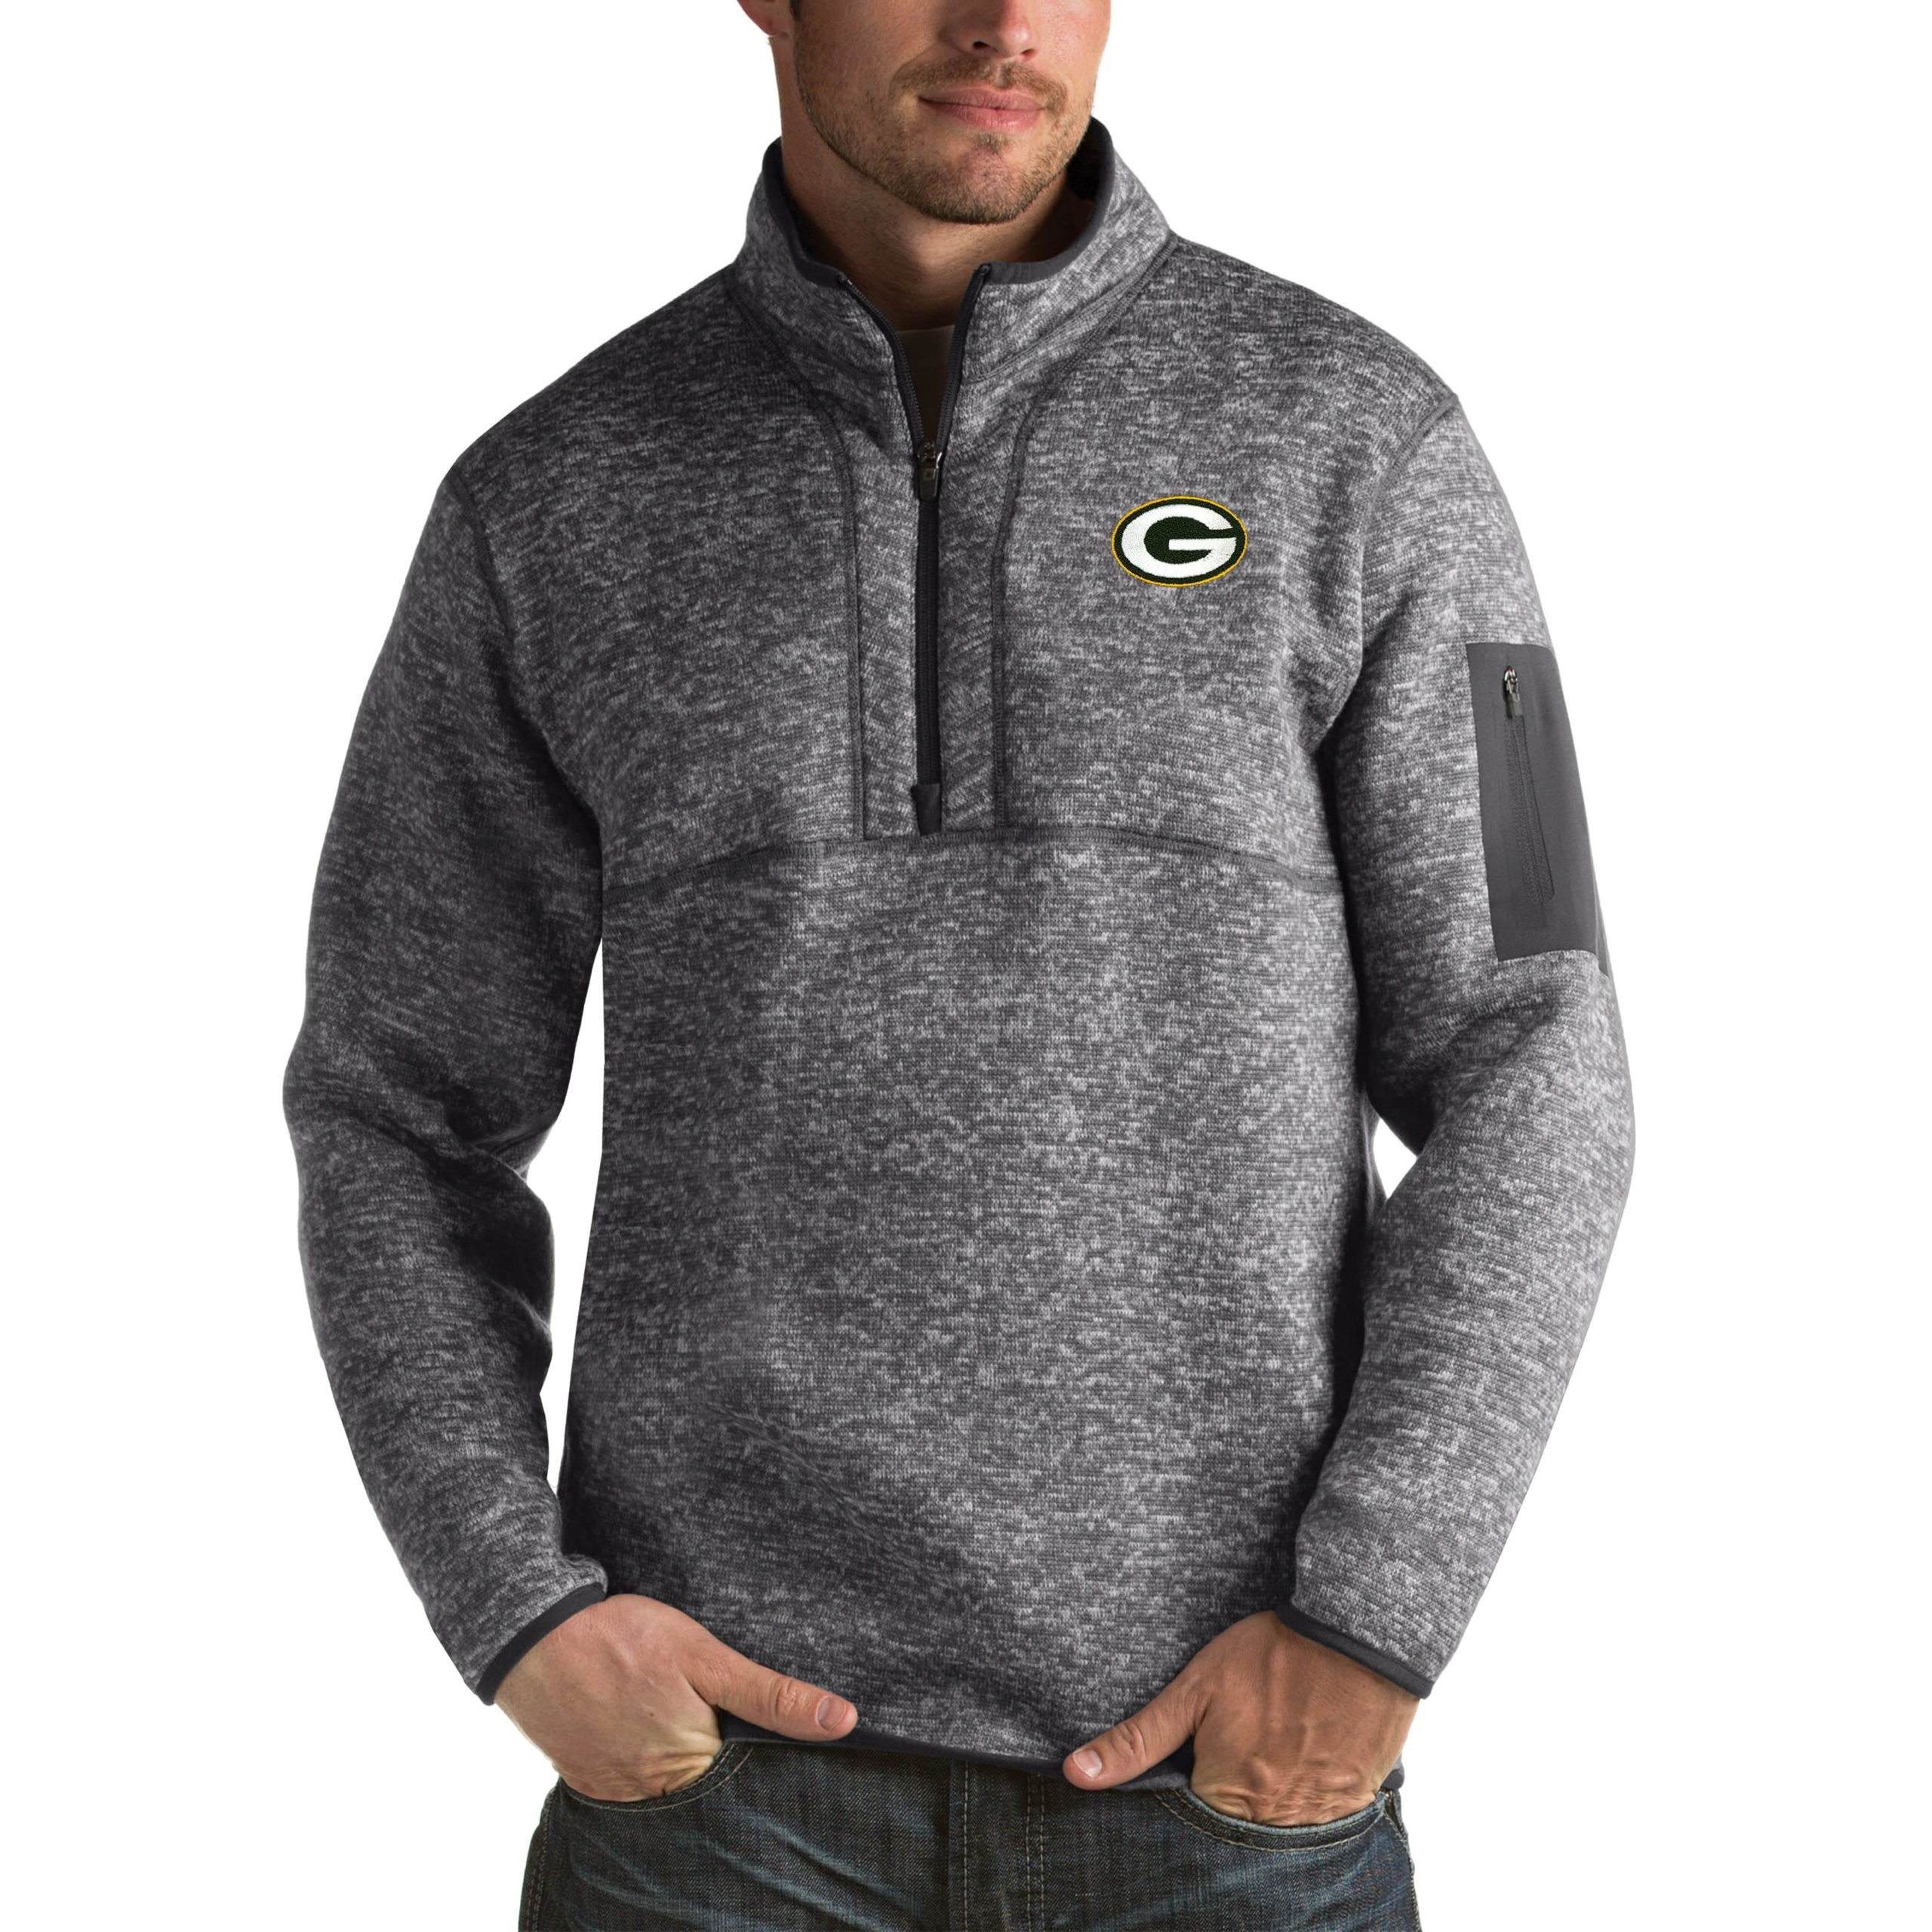 Green Bay Packers Antigua Fortune Big & Tall Quarter-Zip Pullover Jacket - Charcoal